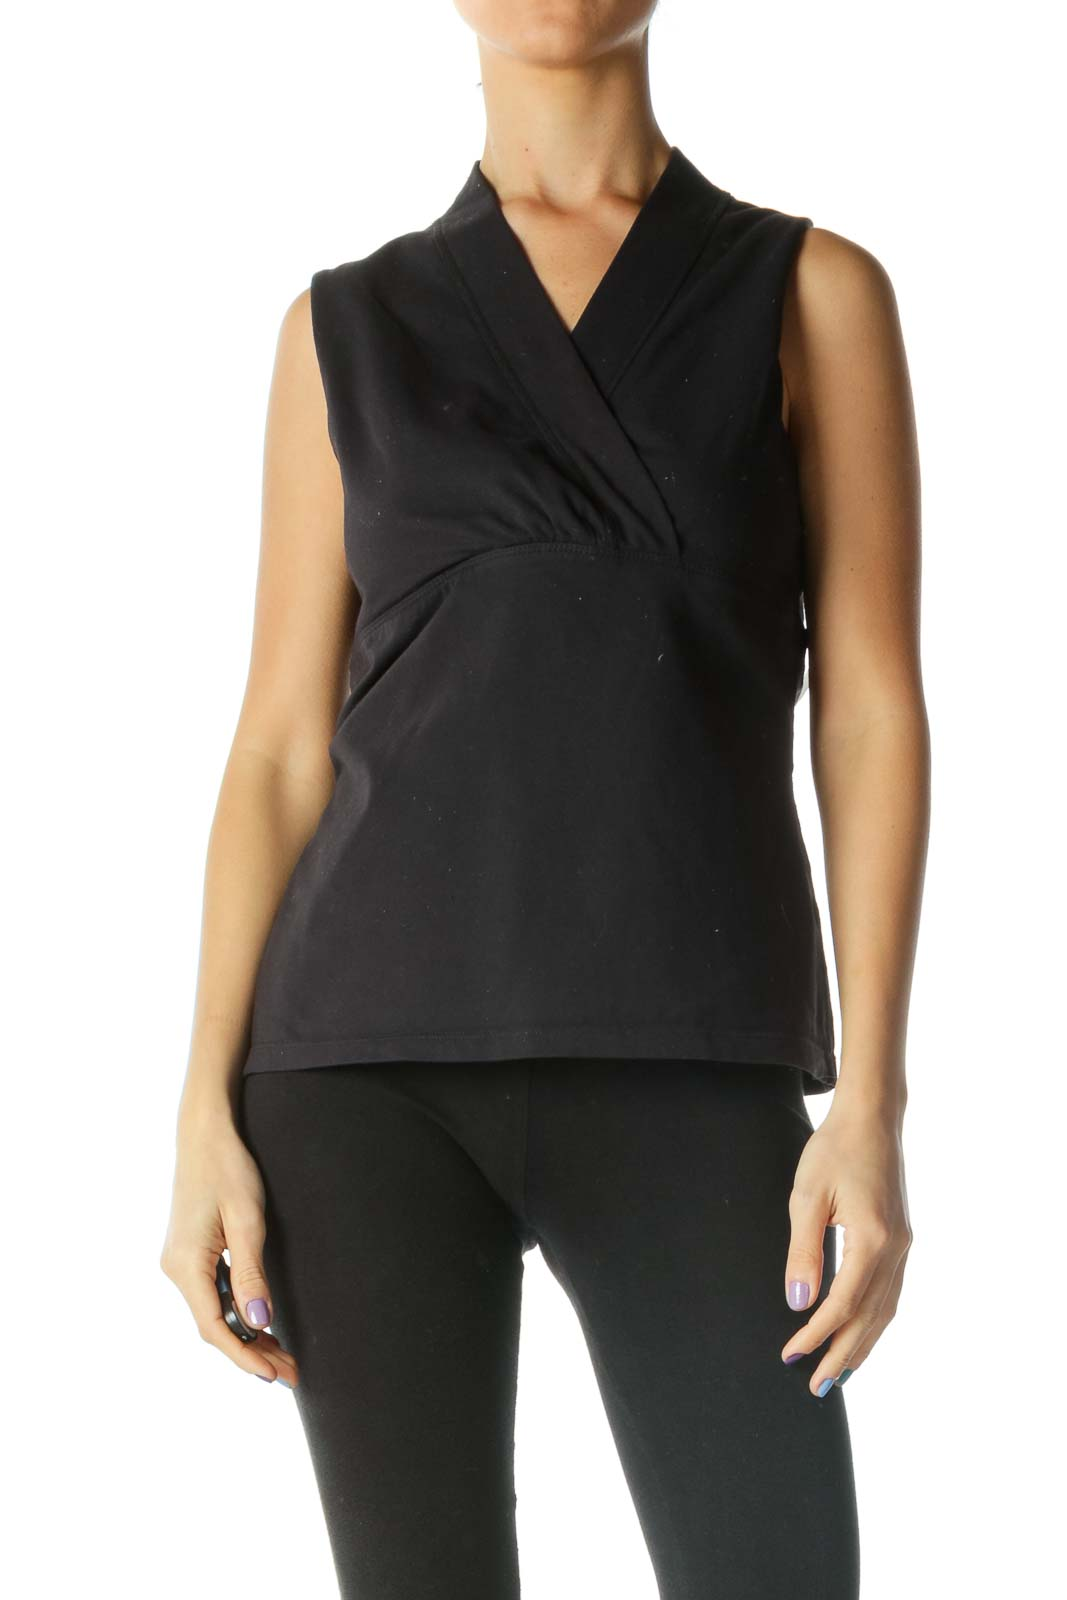 Black Sleeveless Yoga Top